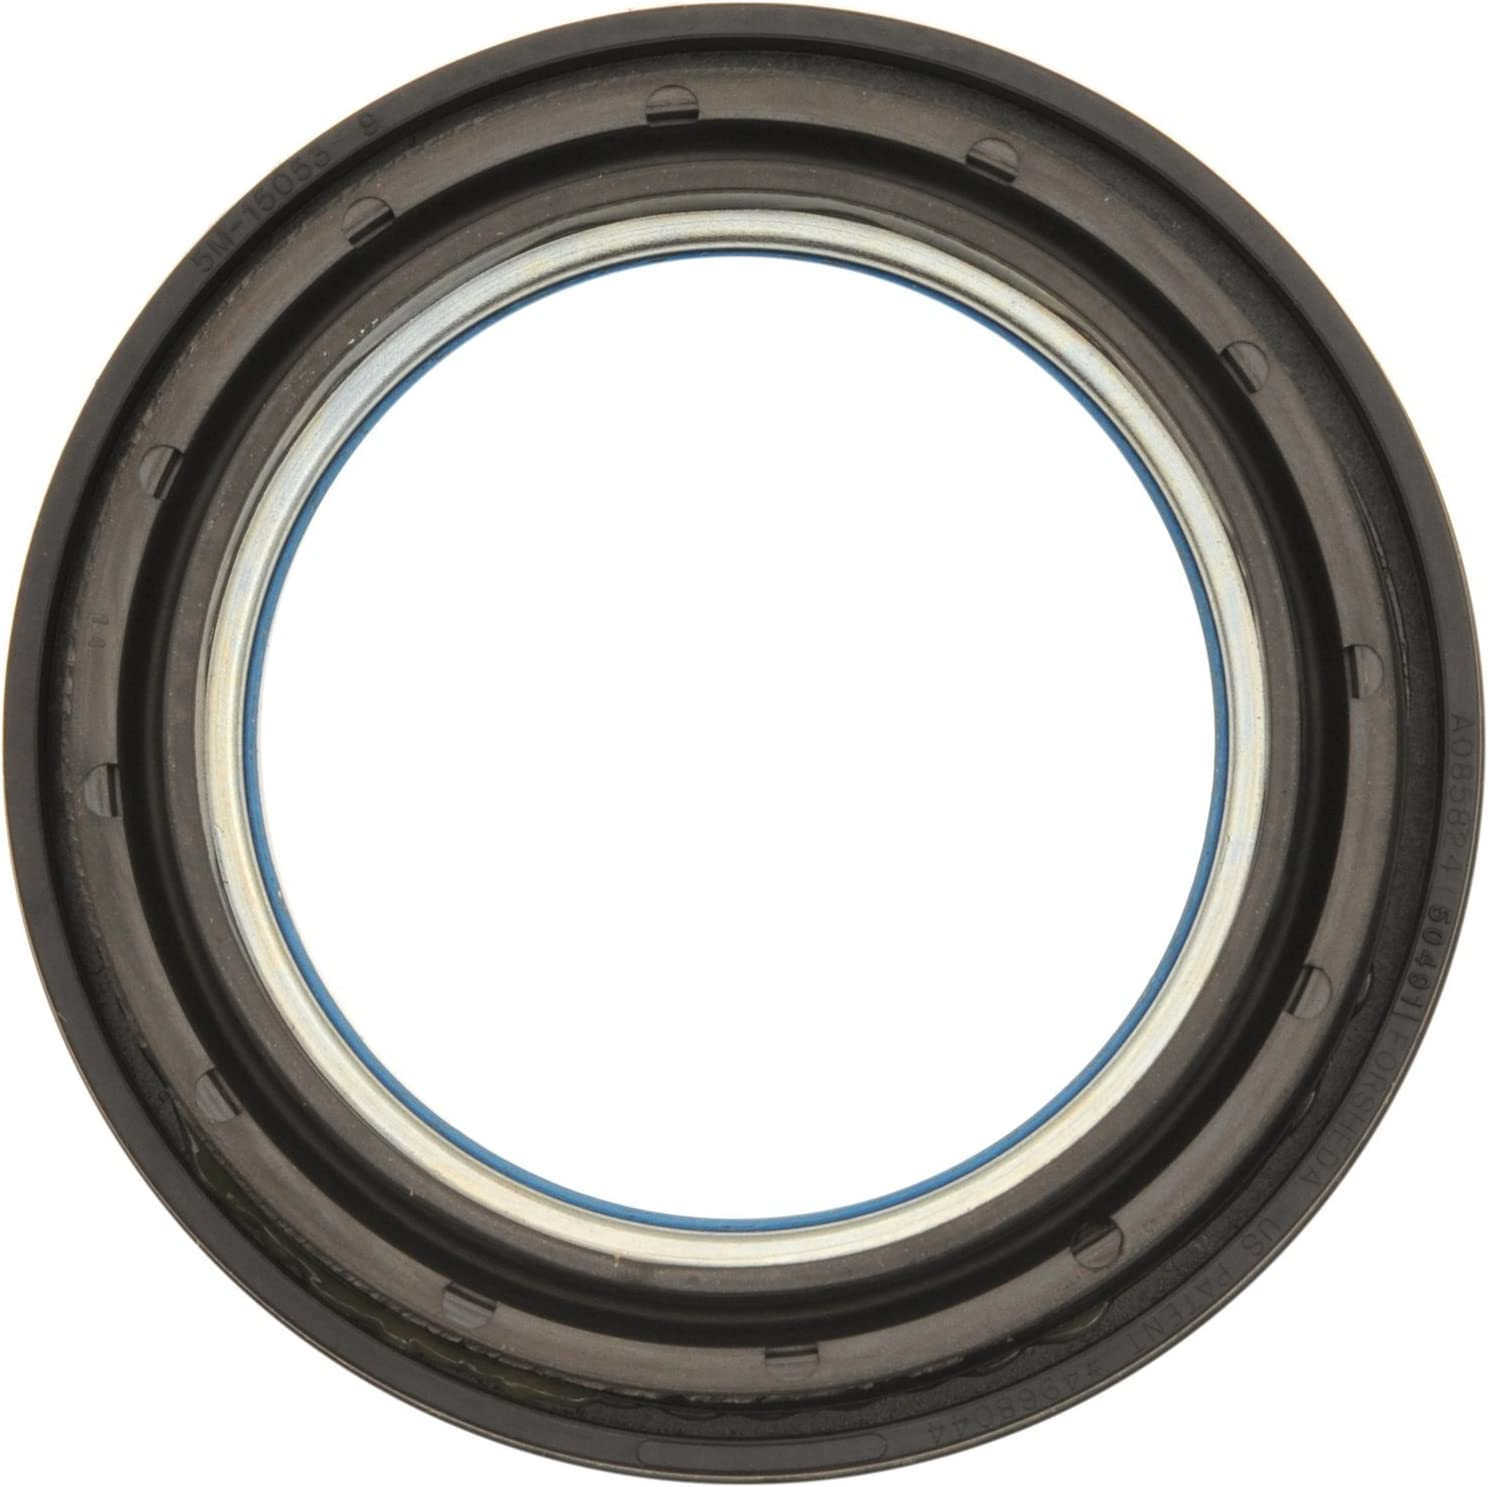 Spicer 50491 Axle Shaft New arrival Special price Seal